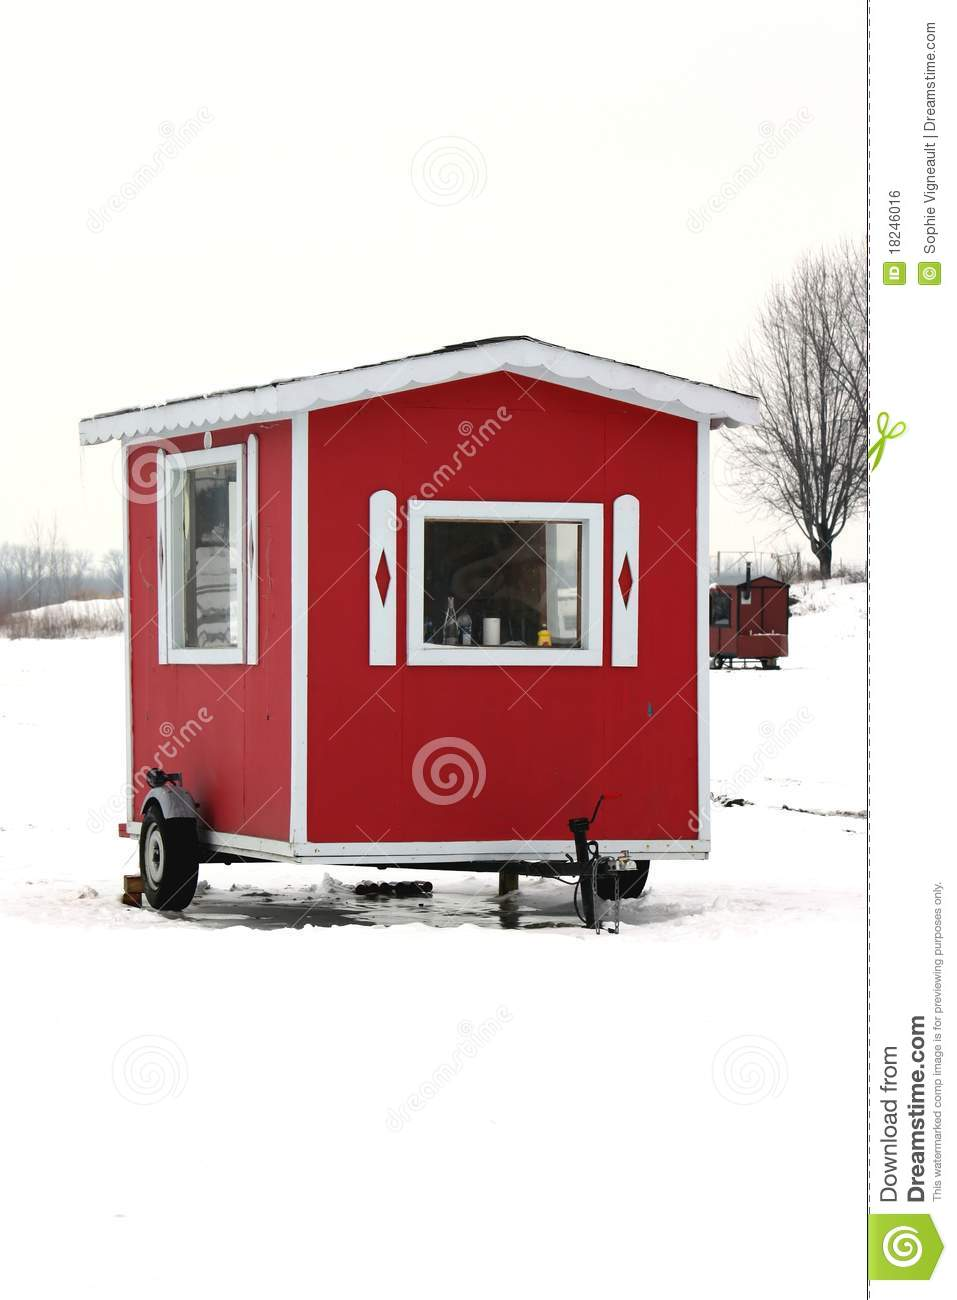 Picturesque red ice fishing cabin on river in winter.